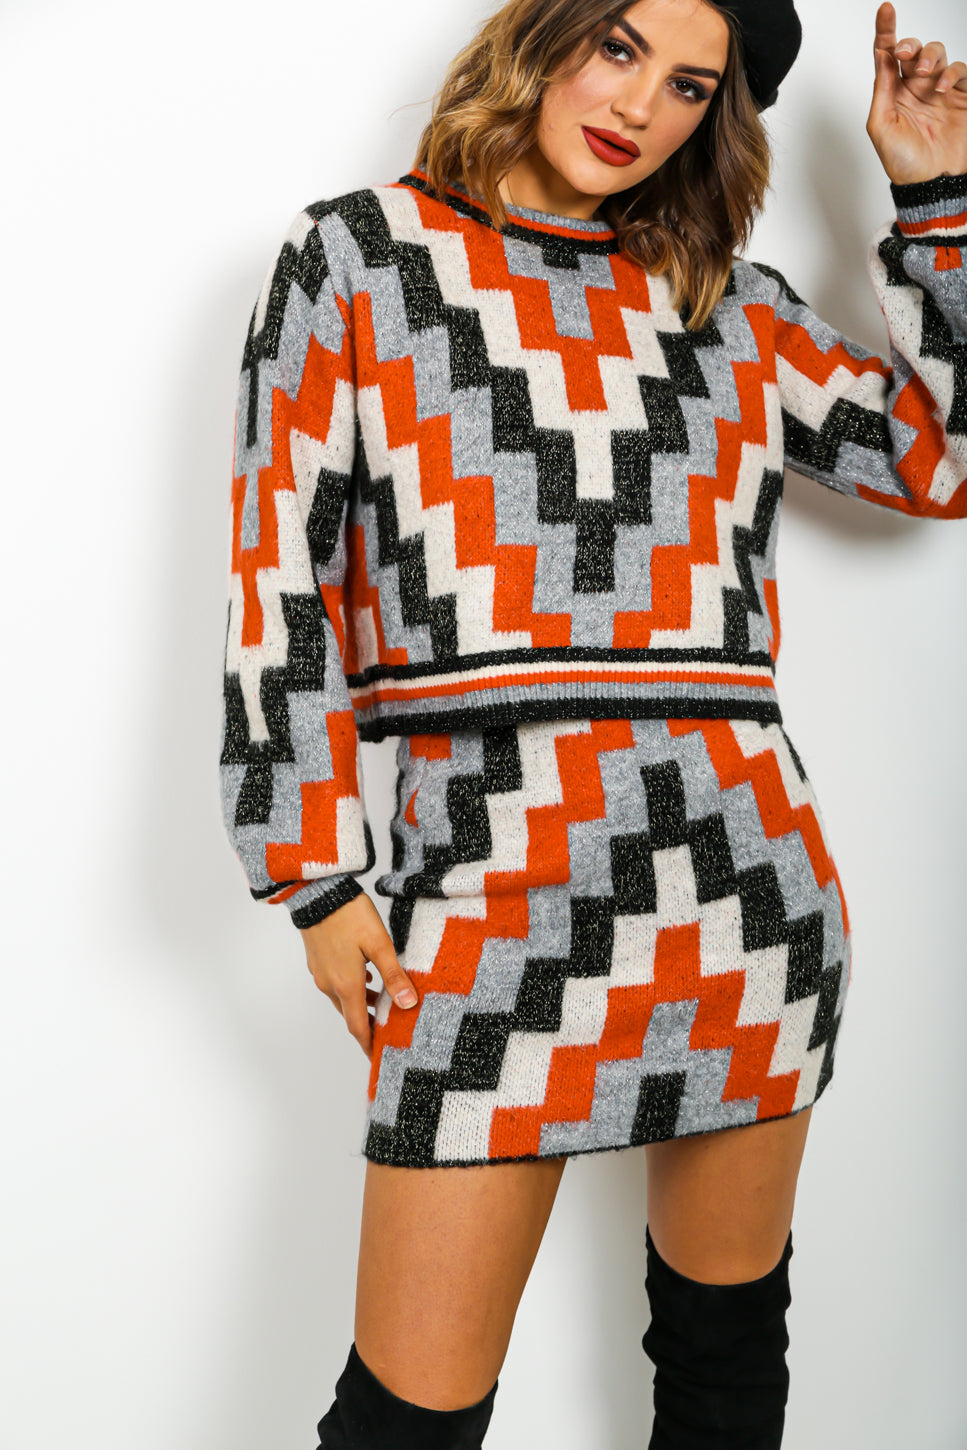 The Perfect Match - Co-ord In ORANGE/ZIGZAG